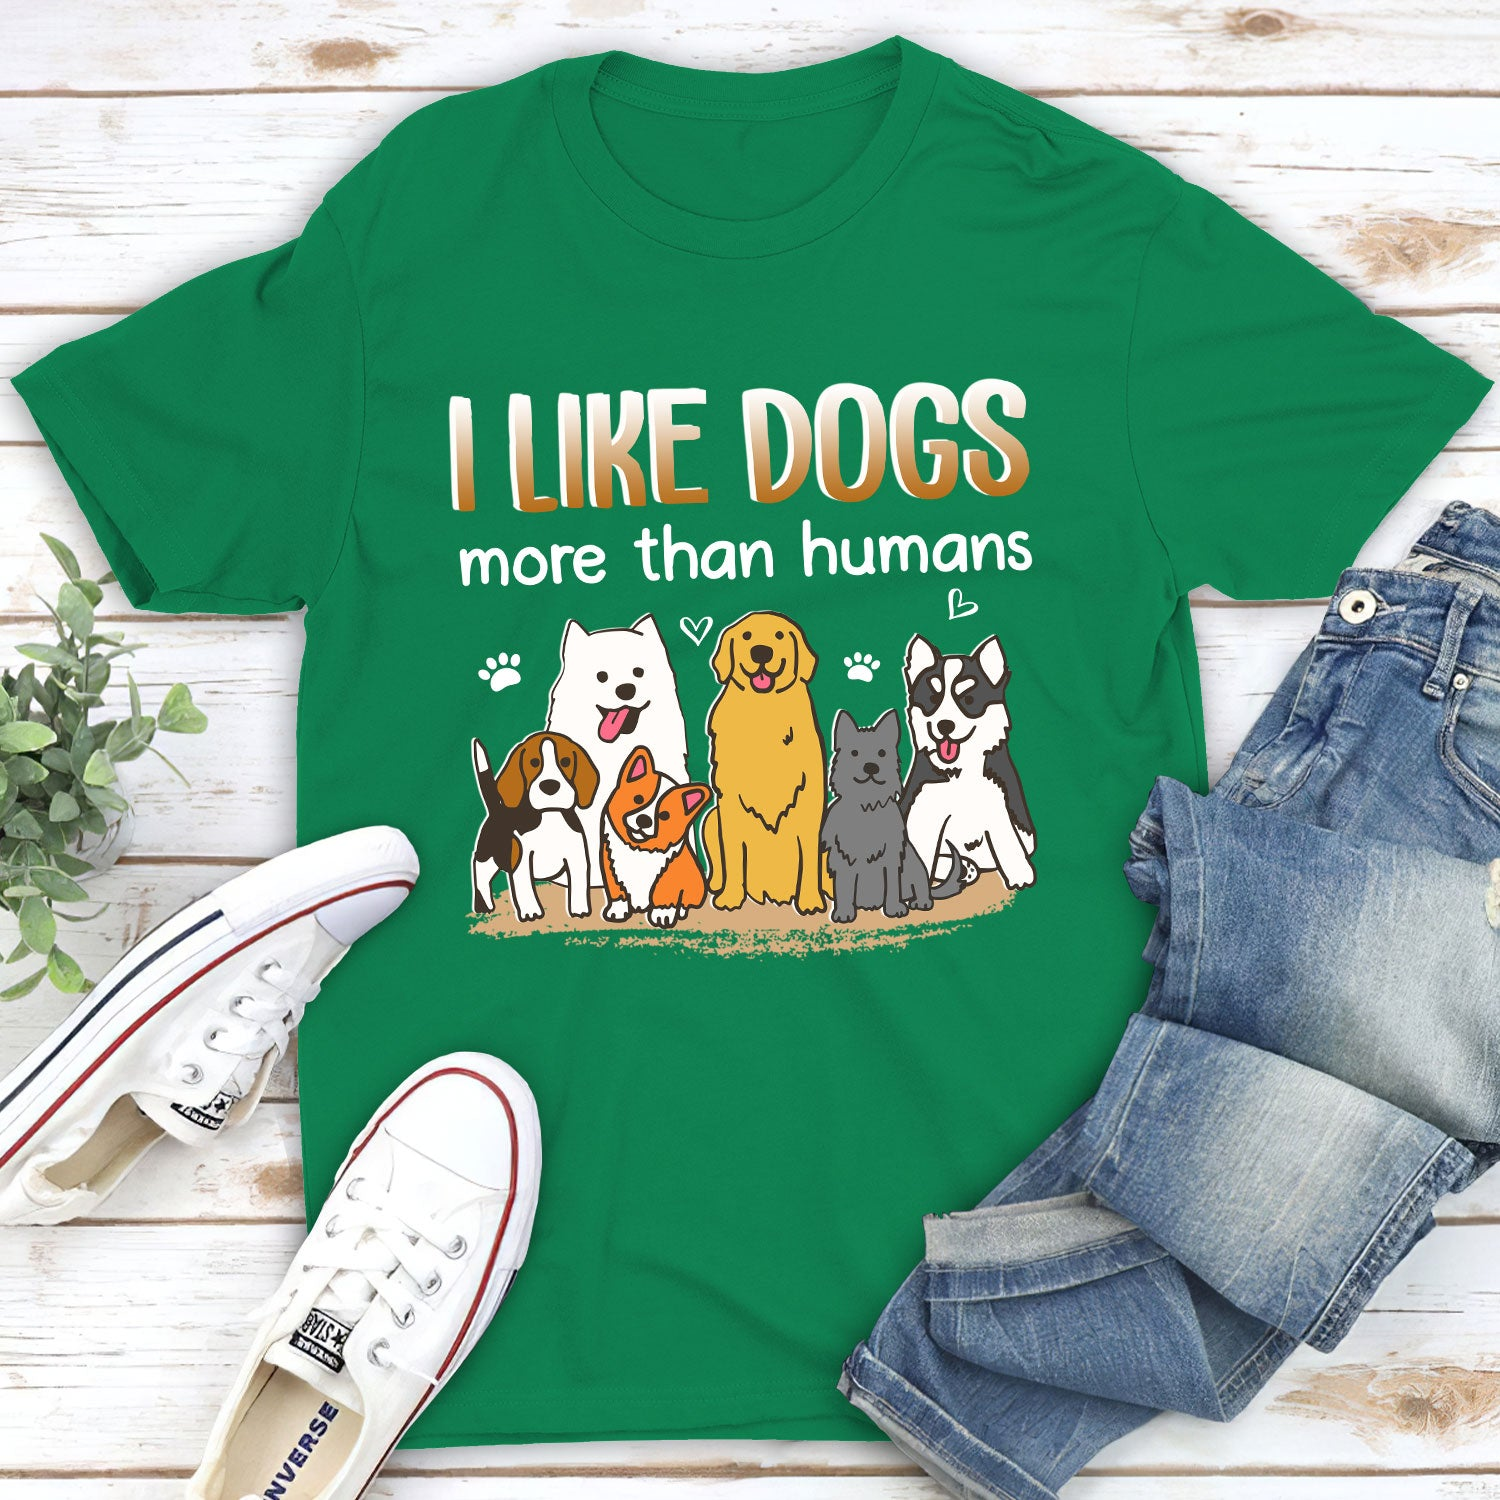 I like dogs - Classic unisex T-shirt